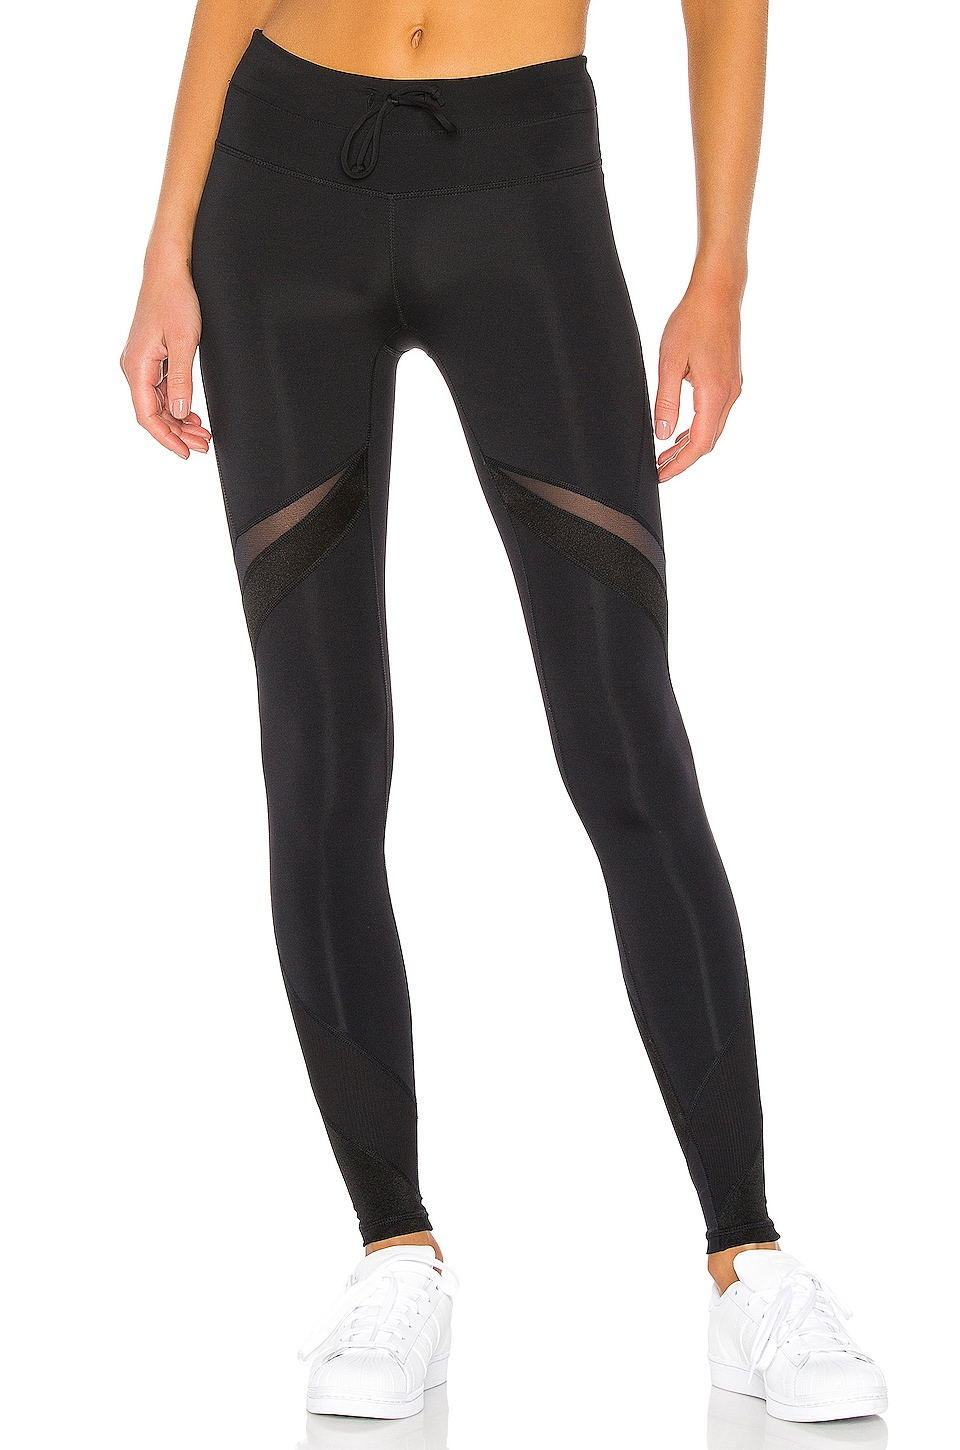 Free People X FP Movement Mid Rise Tap Back Legging in Black